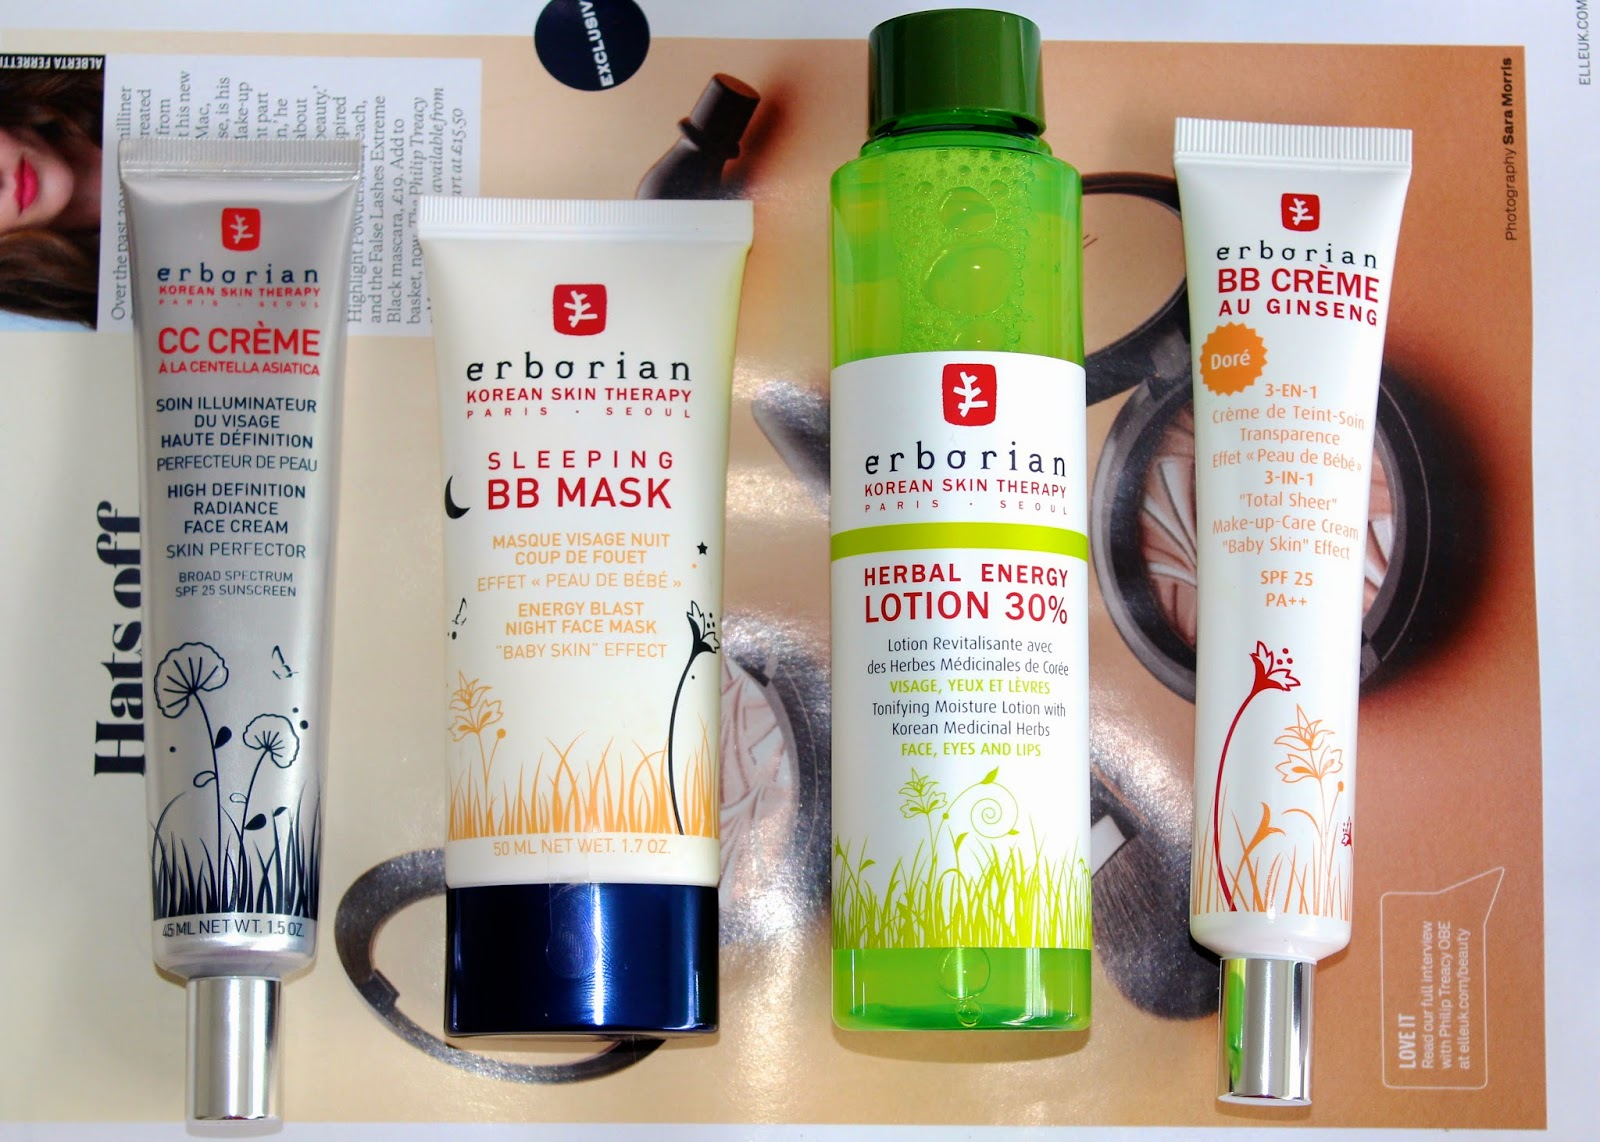 Erborian skincare review - including the original BB creme